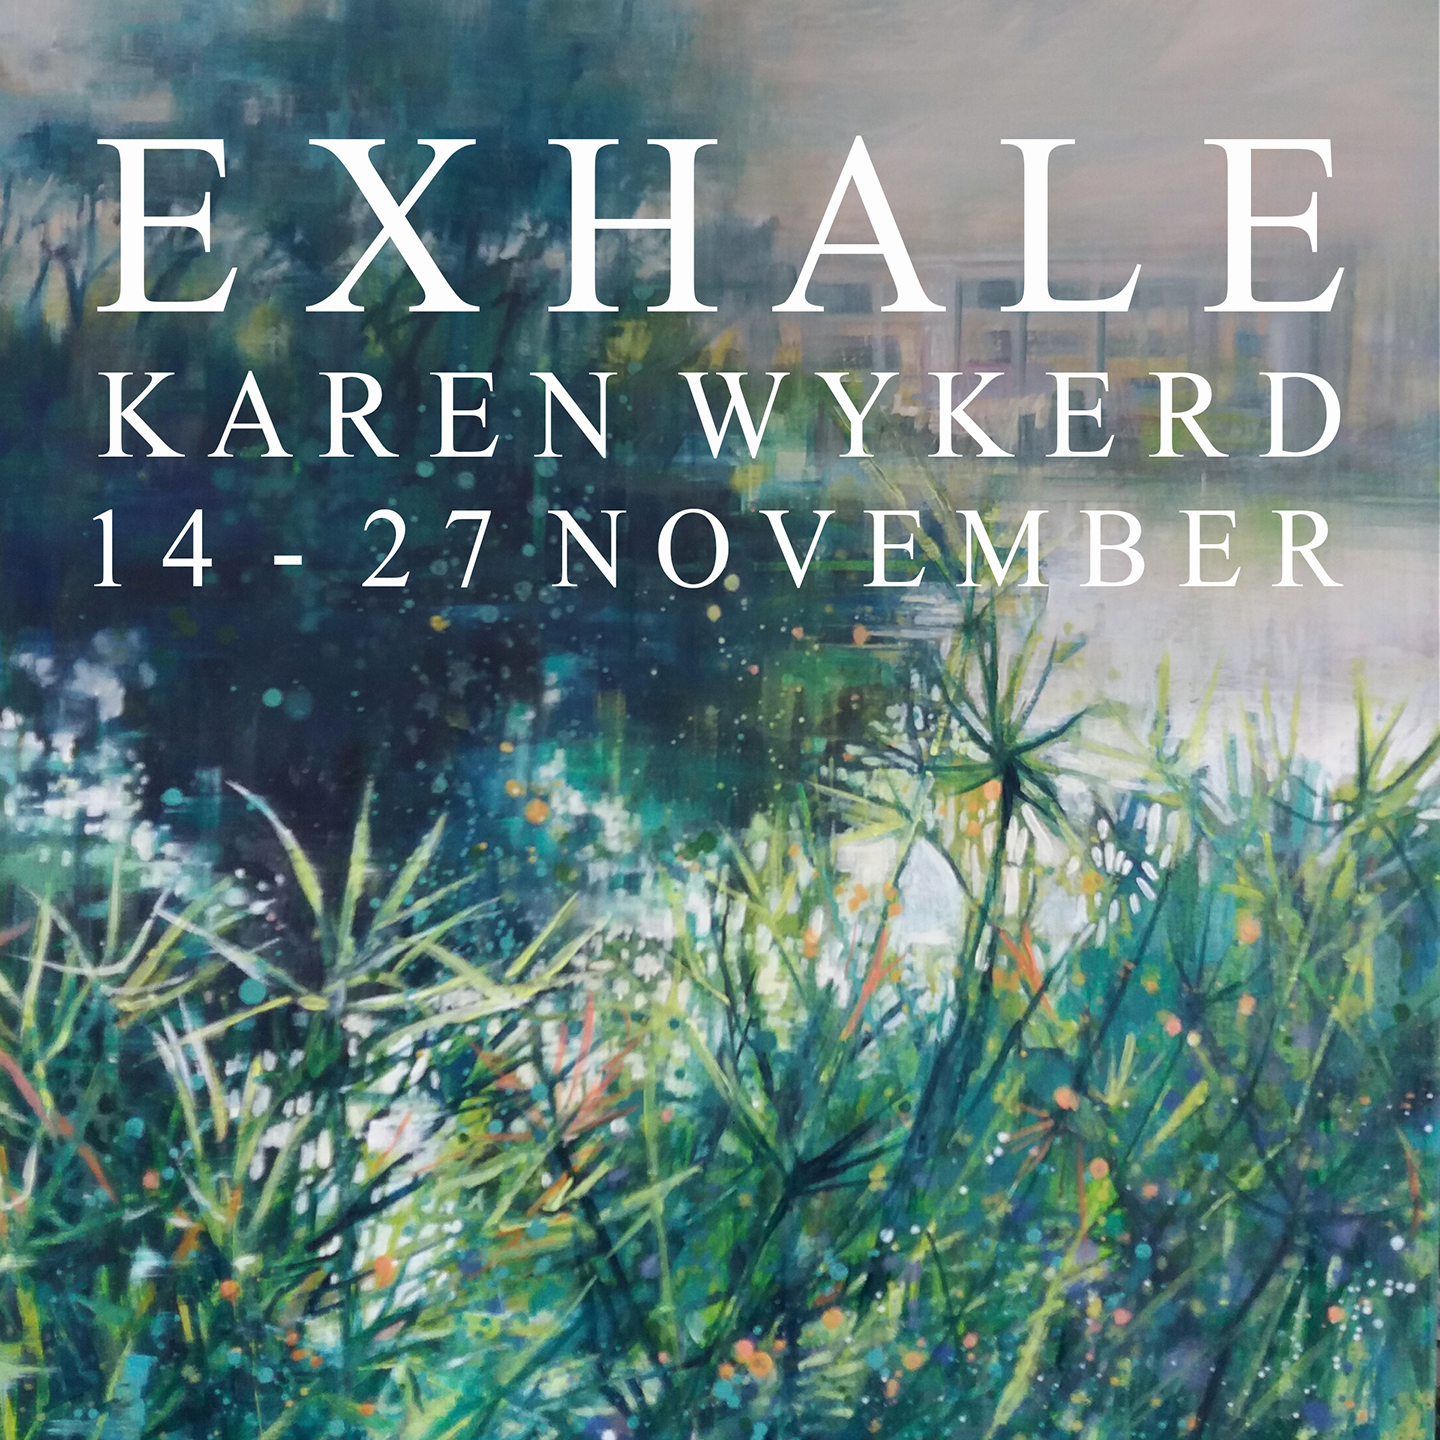 Karen Wykerd | The Studio Art Gallery - EXHALE a Solo Exhibition by Karen Wykerd - Icon Image